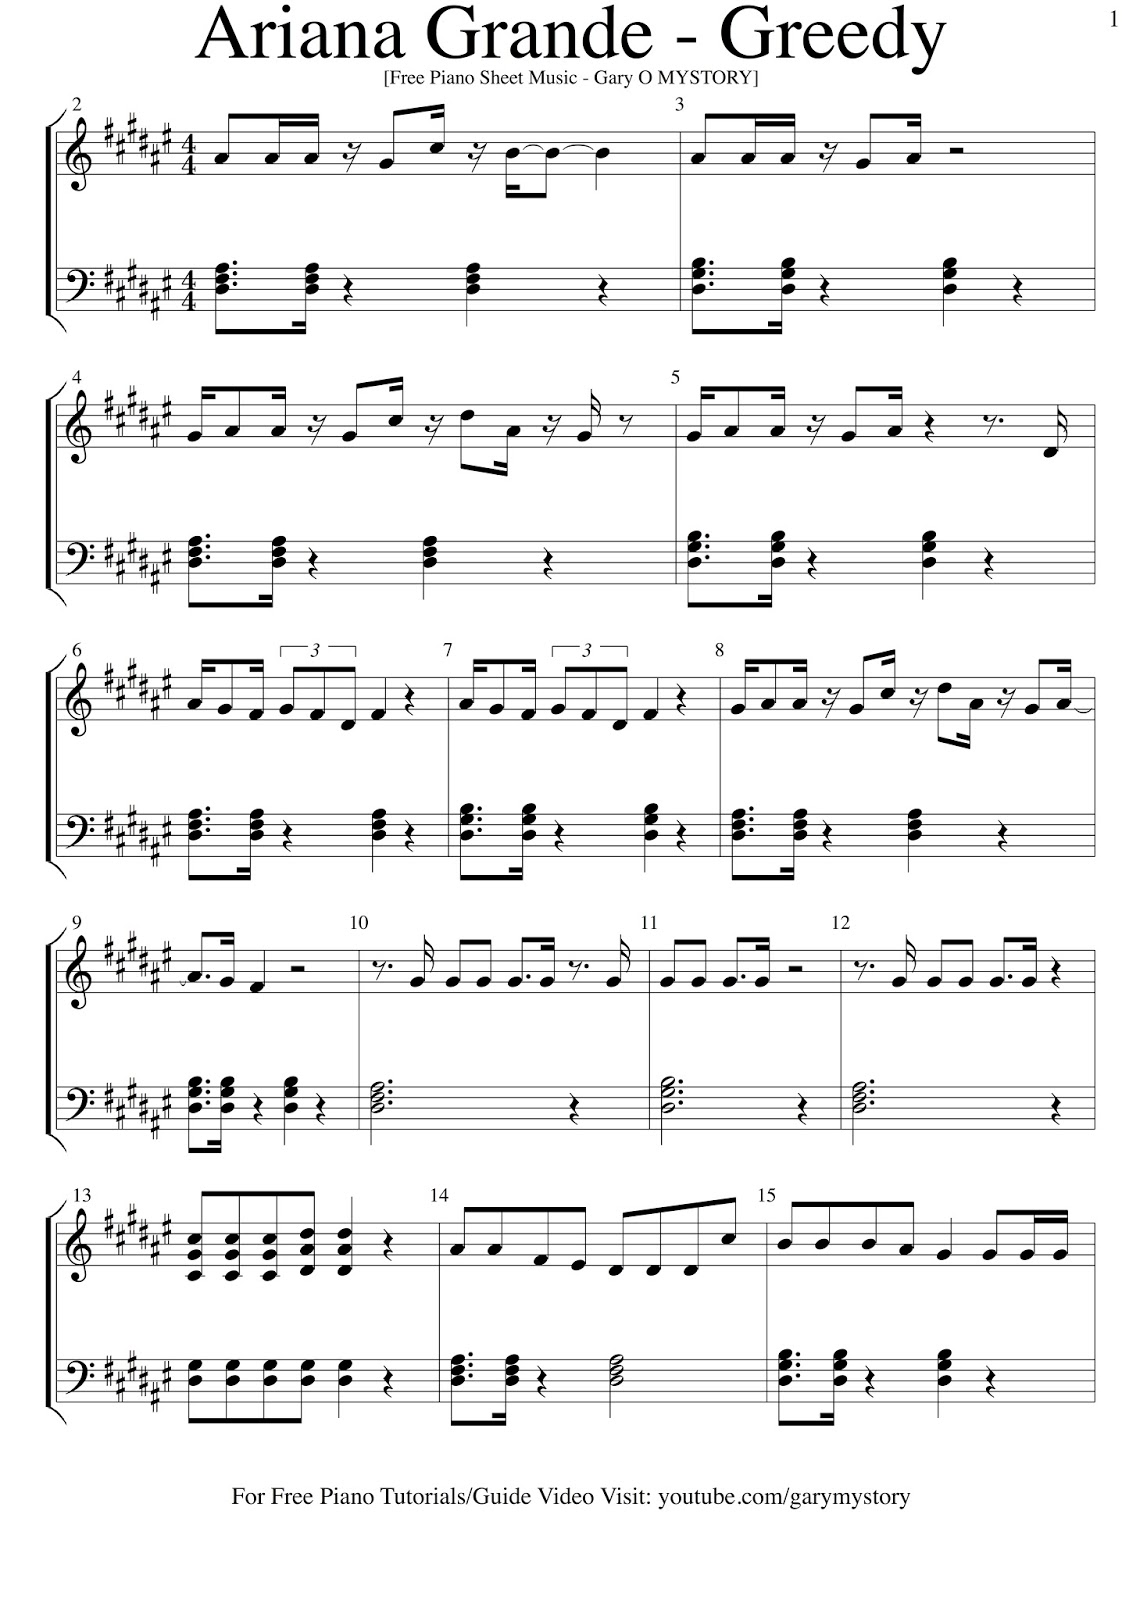 Ariana grande greedy free piano sheet music easy piano tutorial gary o mystory hexwebz Image collections